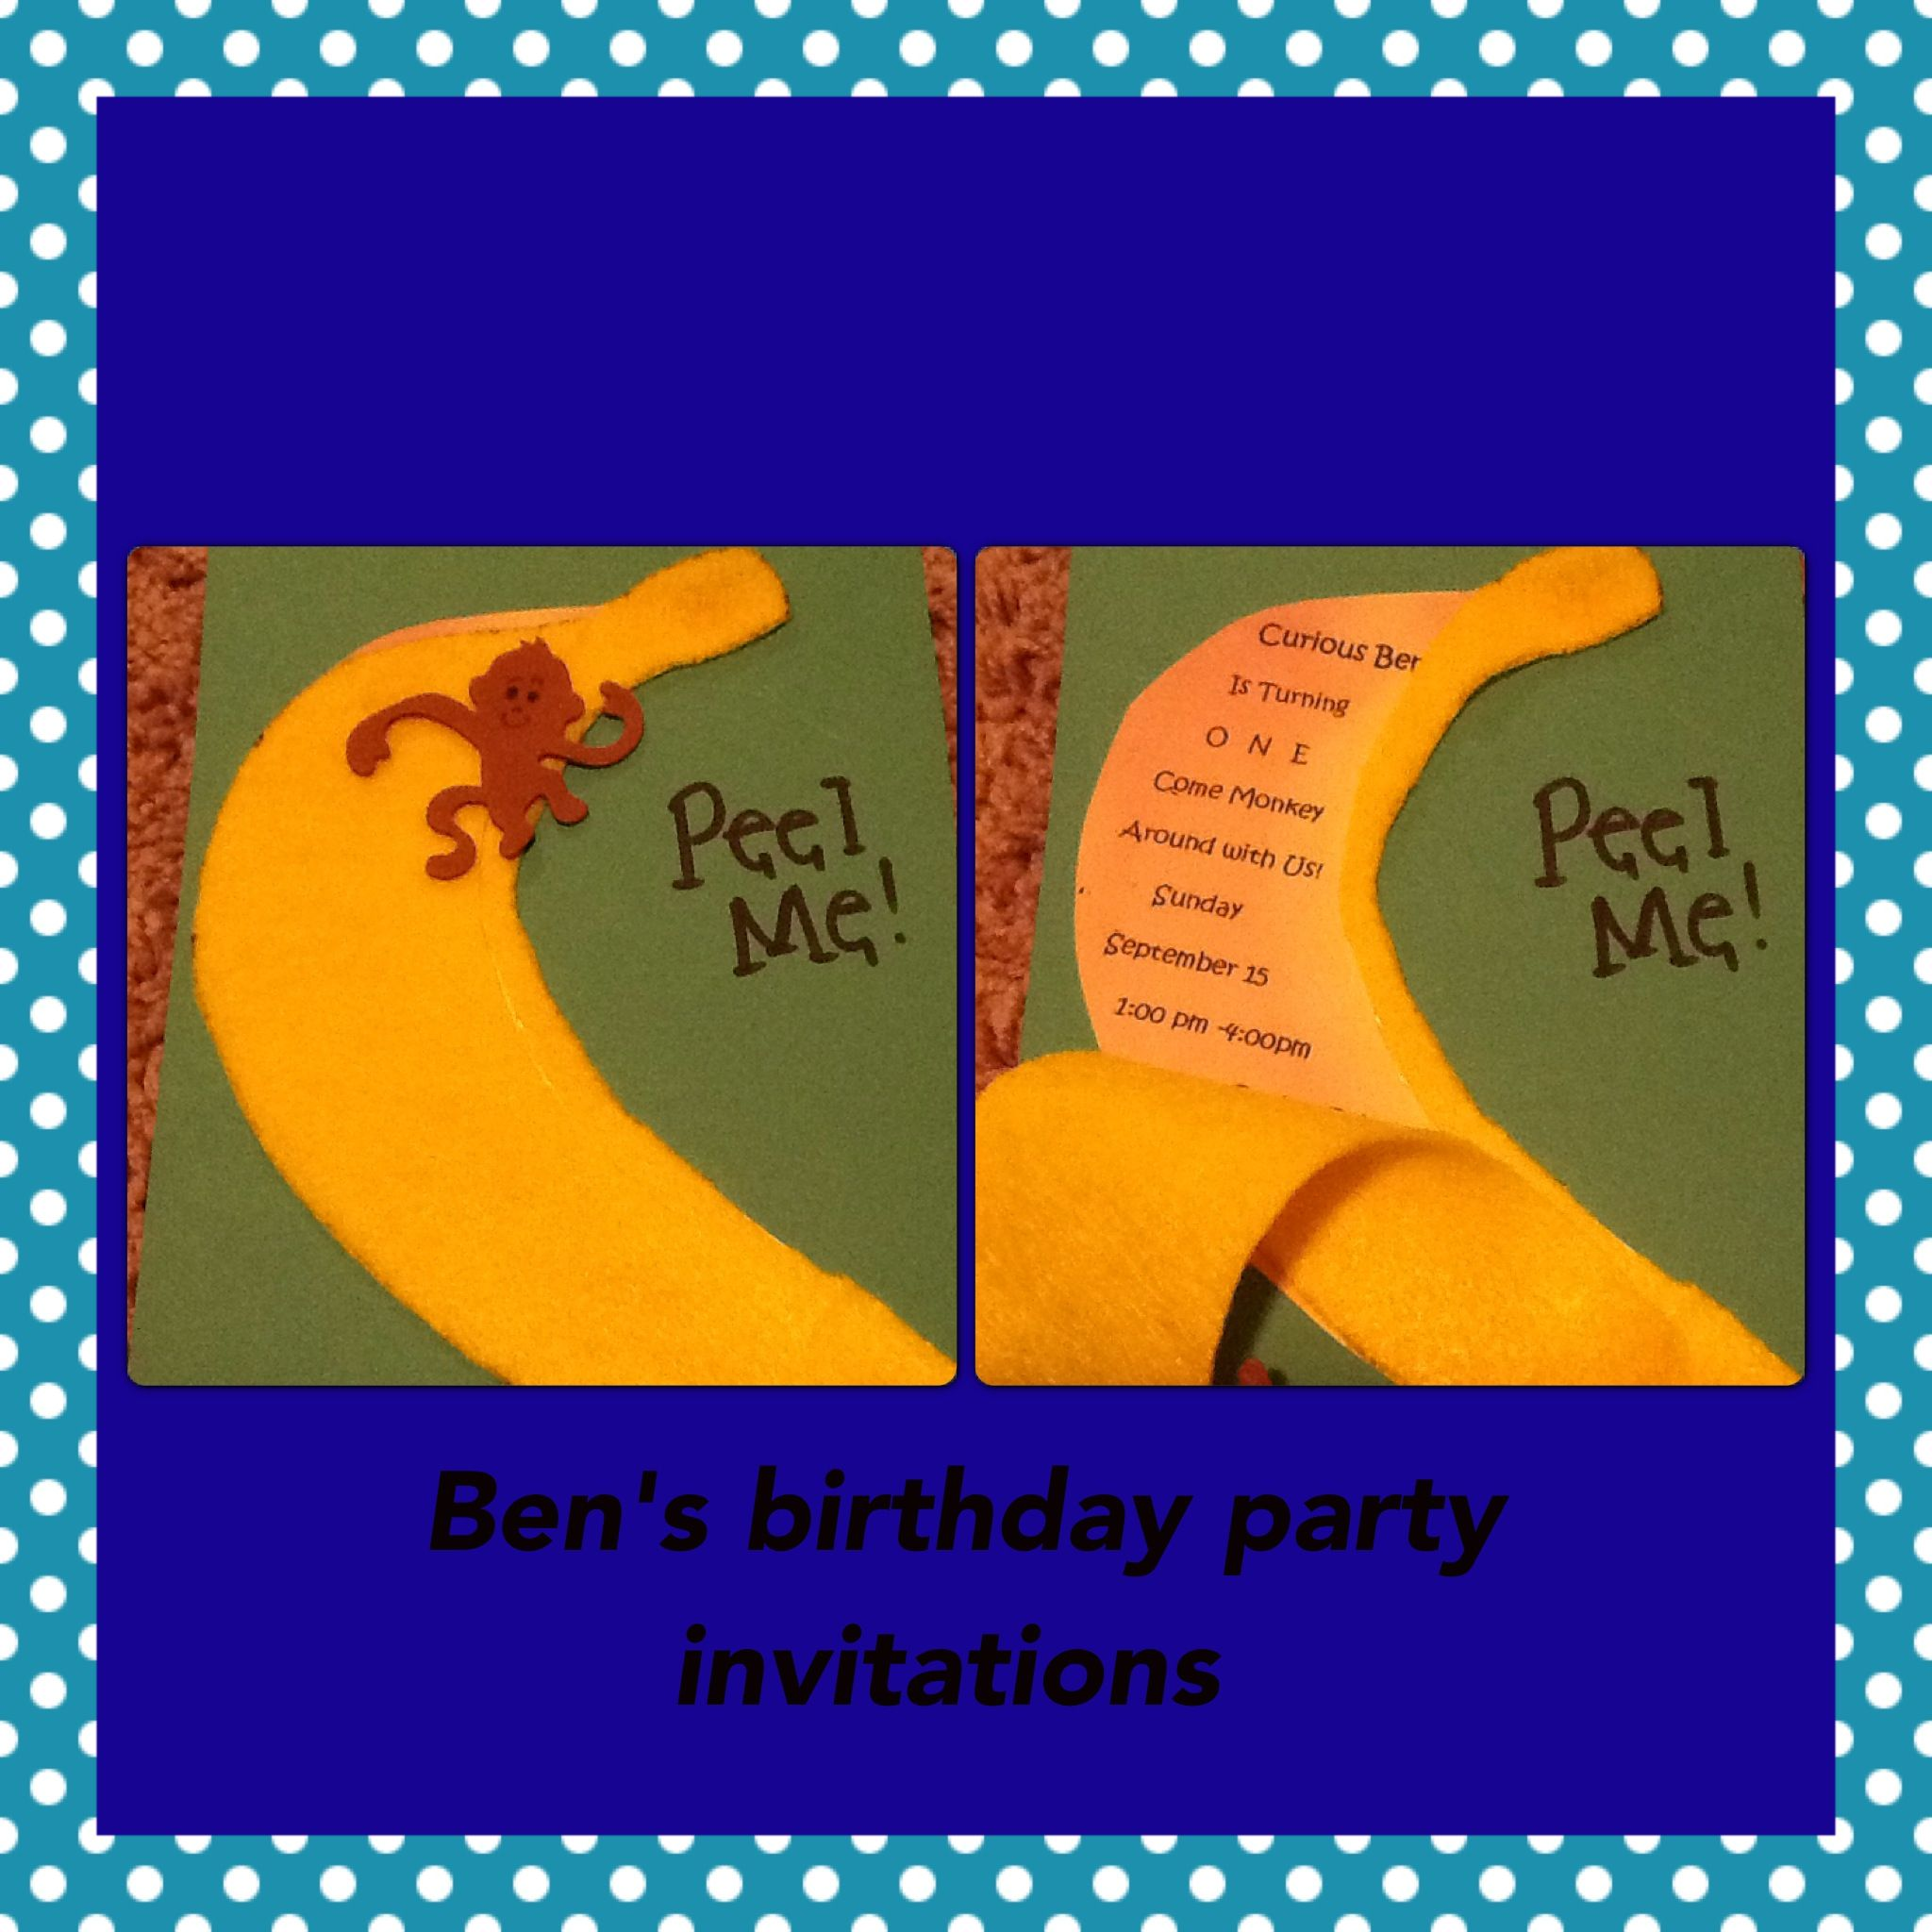 Took 5x7 Card Stock Printed Out A Banana With Birthday Details And